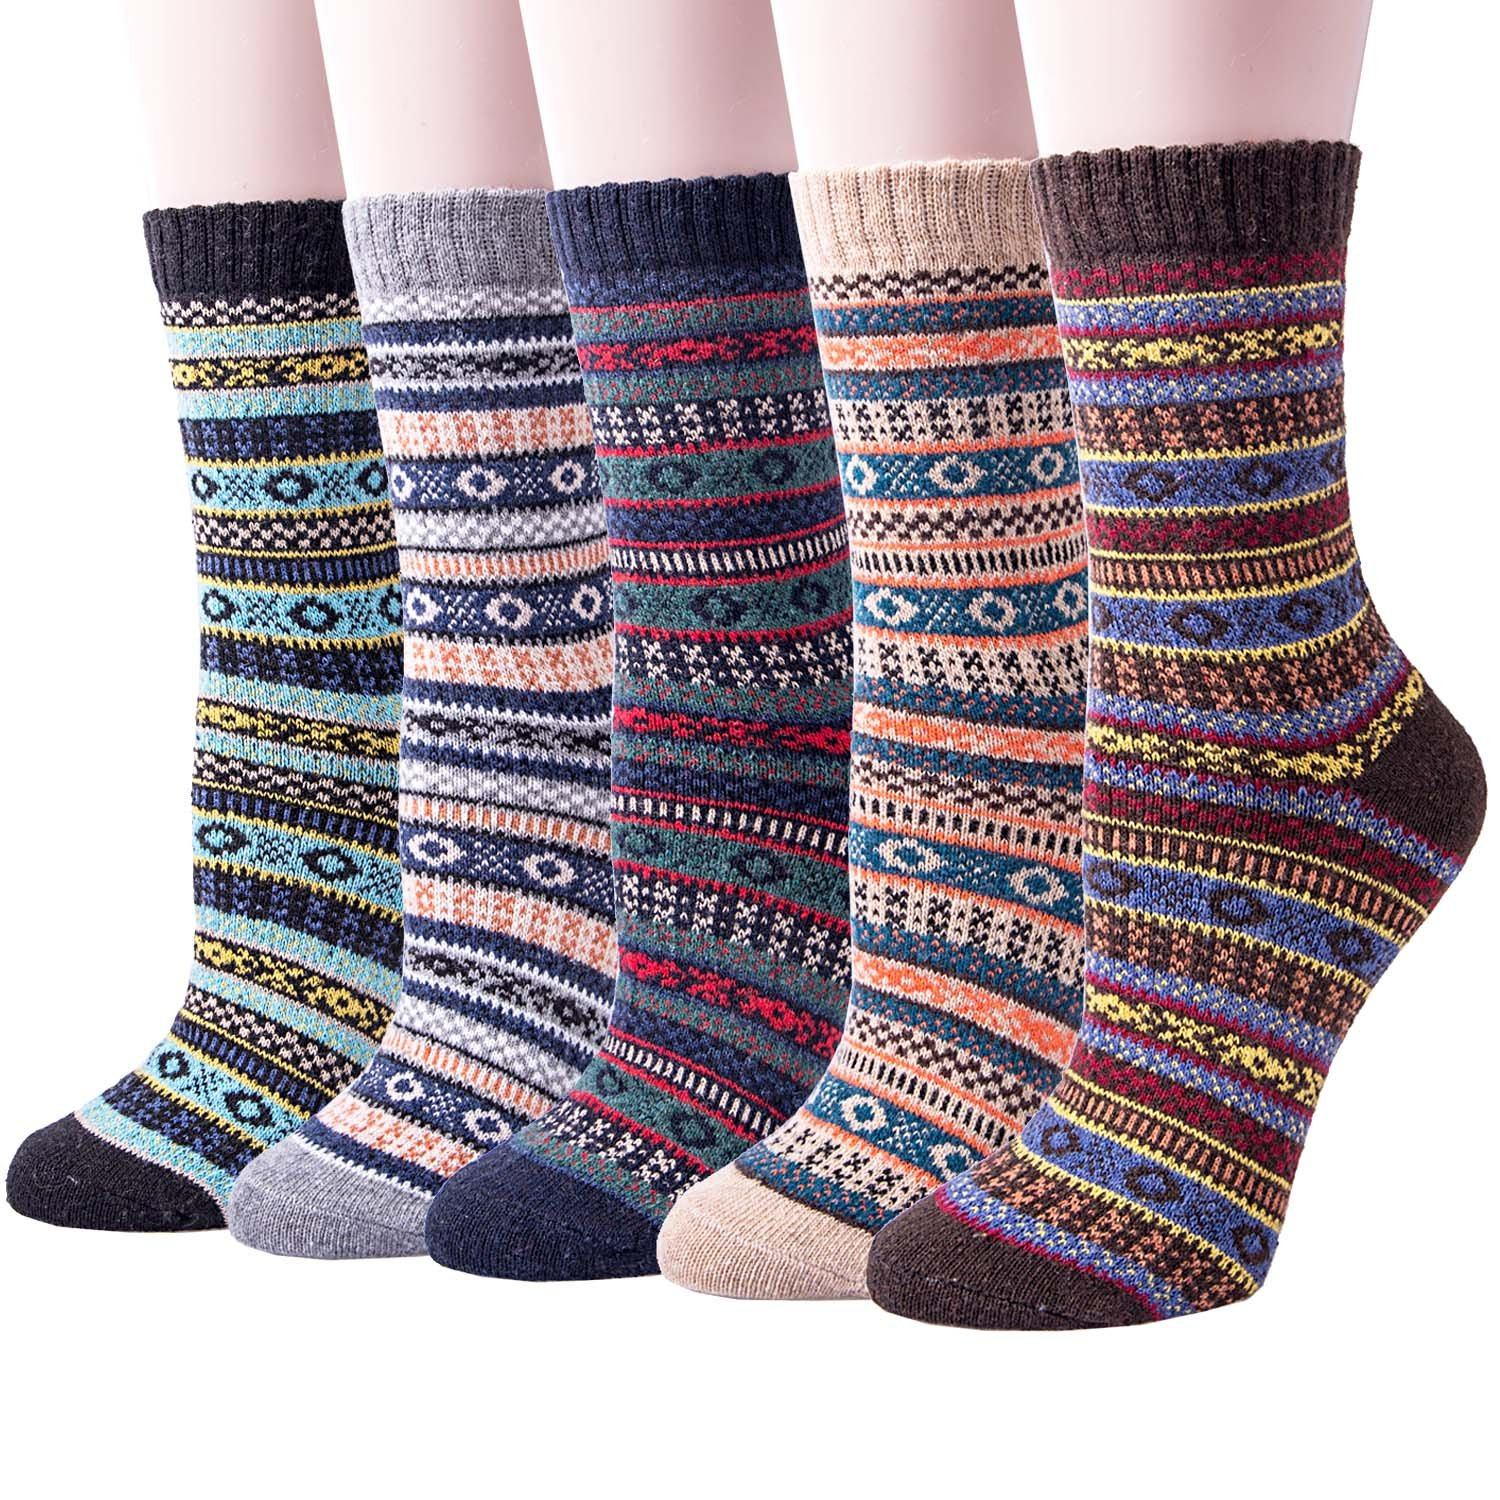 5 Pairs Womens Socks - Wool Thick Knit Warm Winter Casual Socks for Ladies B07H9RCTHF